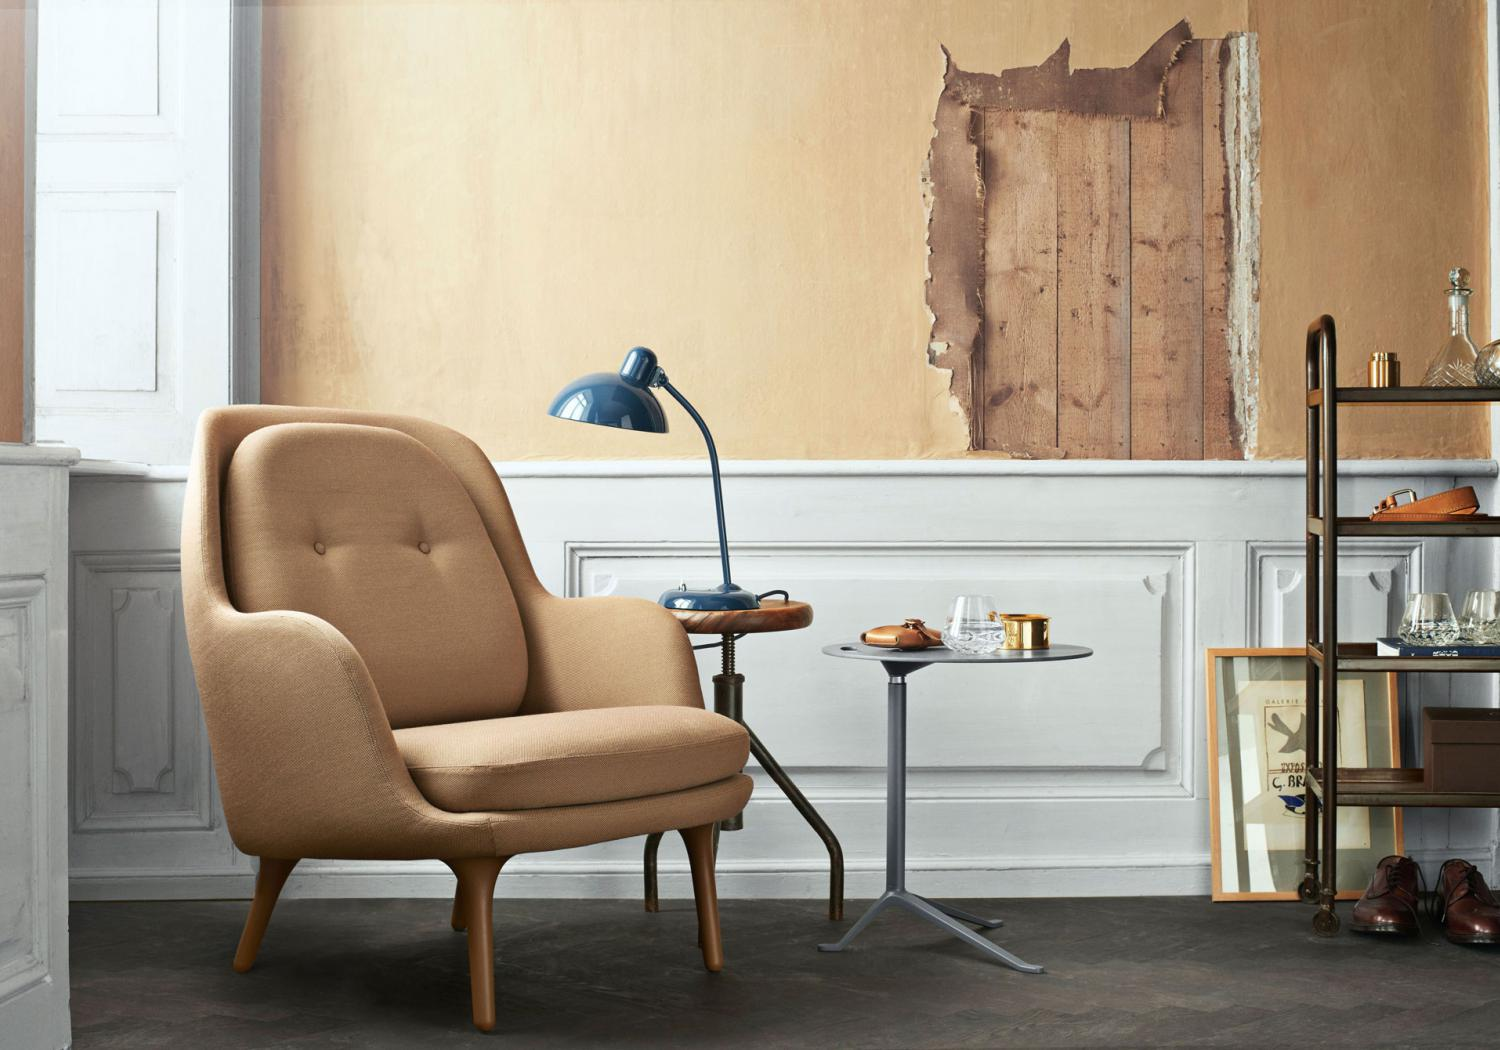 Fri from Fritz Hansen: a brand new armchair by Jaime Hayon